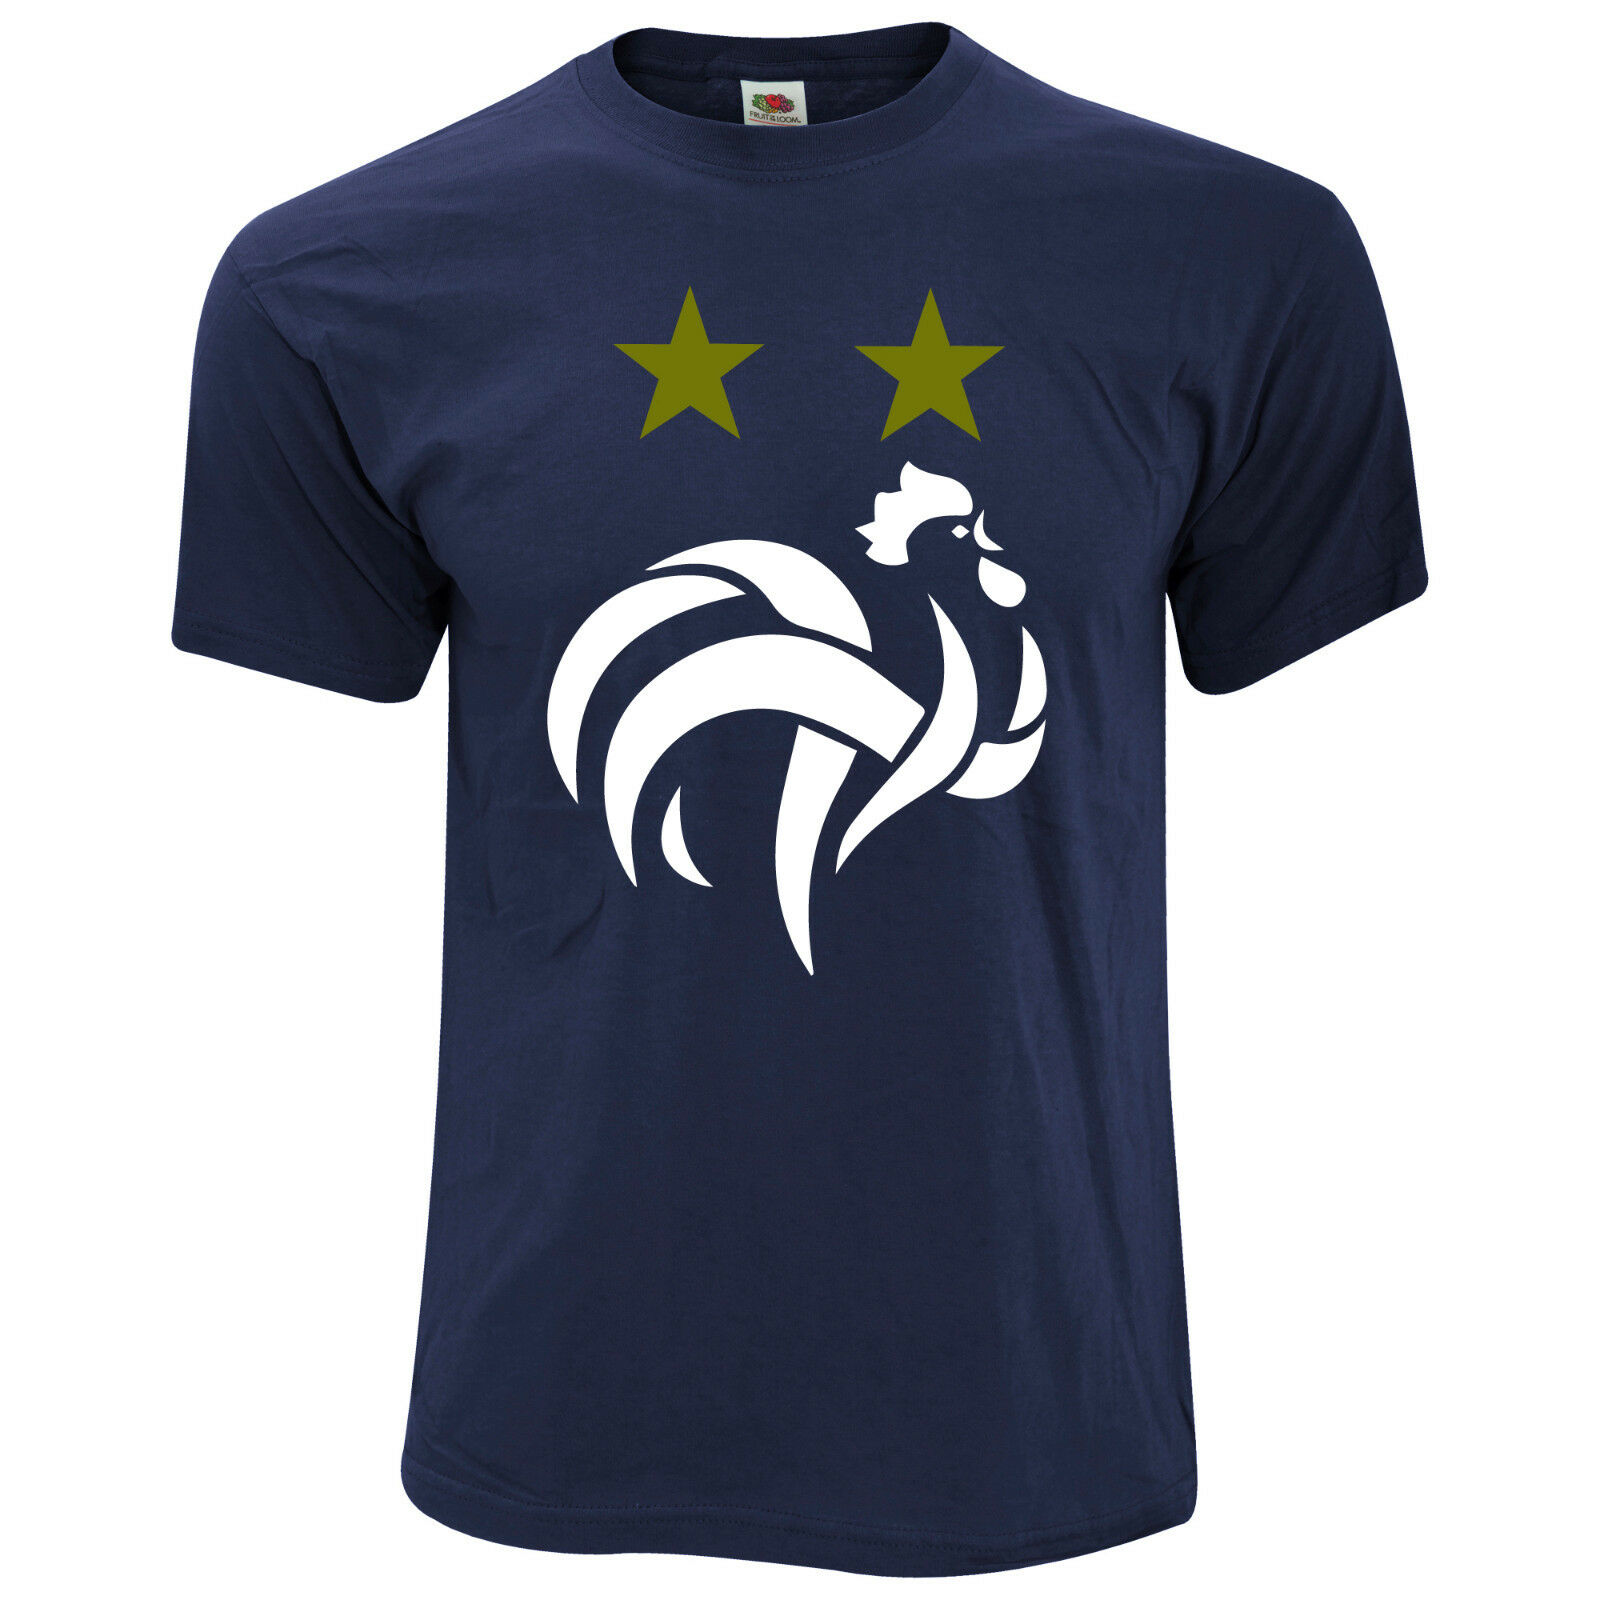 t shirt coupe du monde 2018 2 toiles champion football mbappe griezmzann eur 19 99. Black Bedroom Furniture Sets. Home Design Ideas